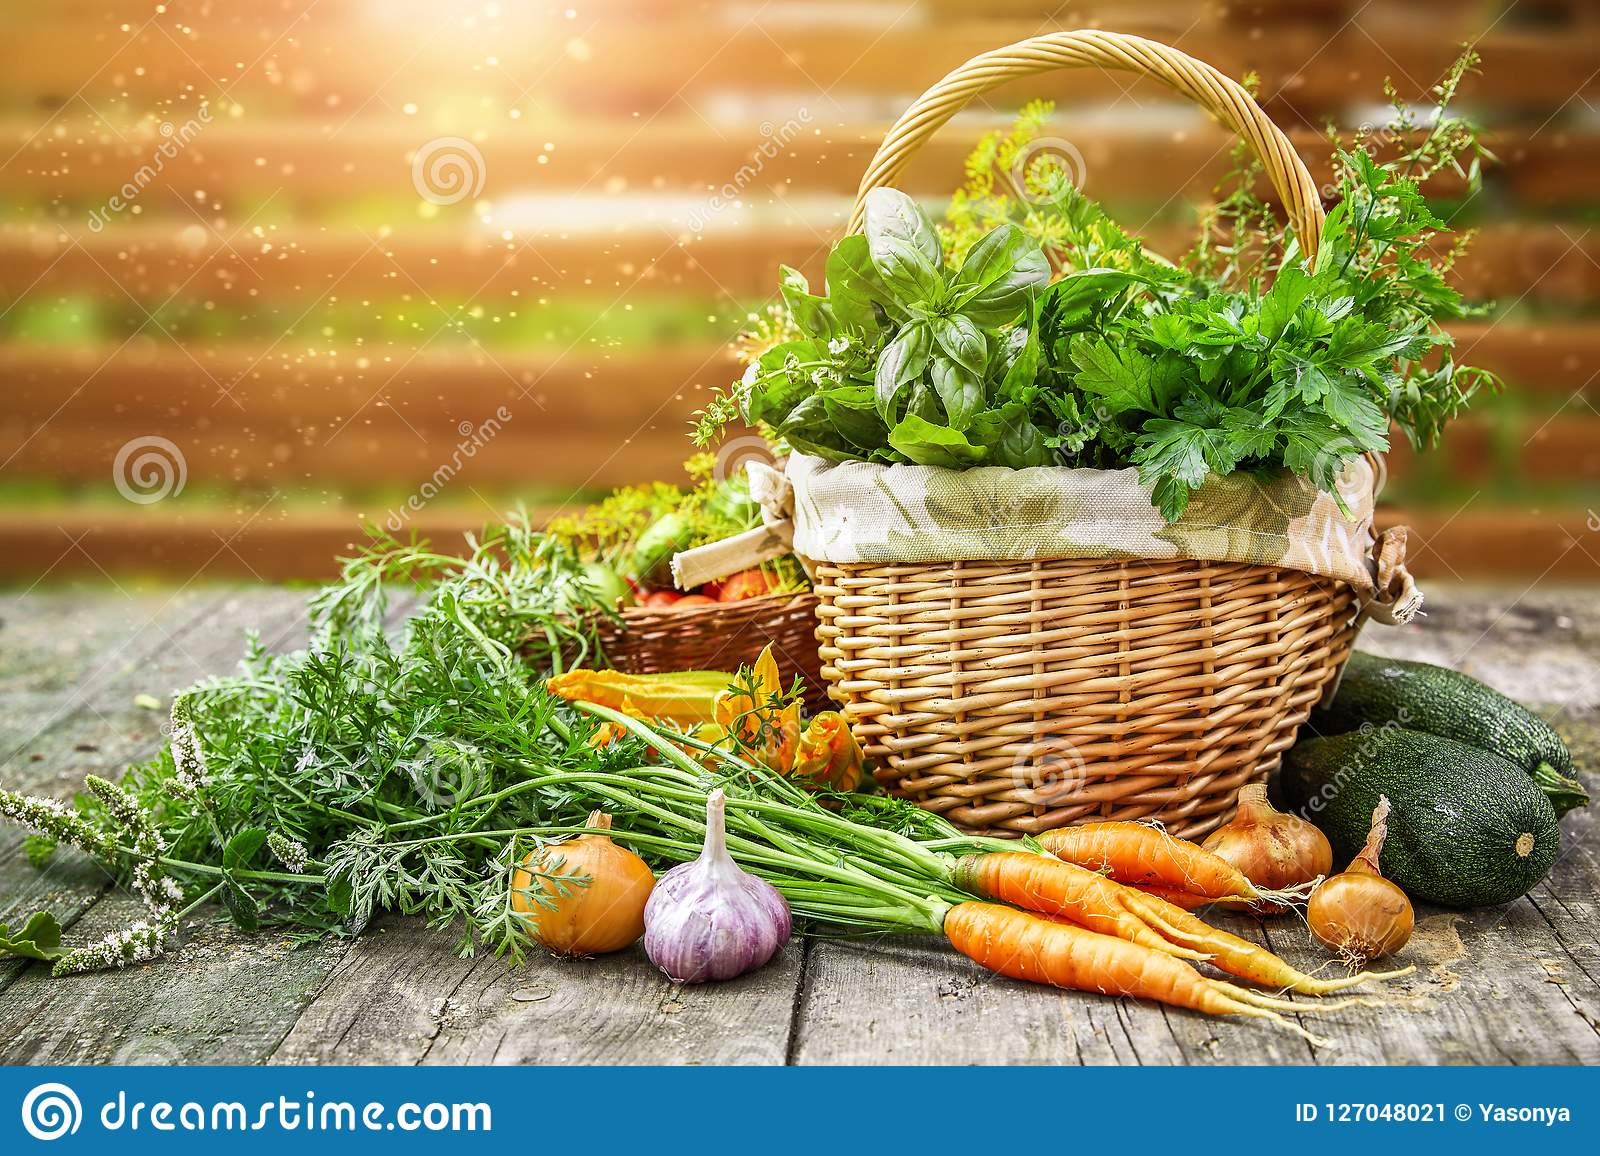 Harvest vegetables with herbs and spices